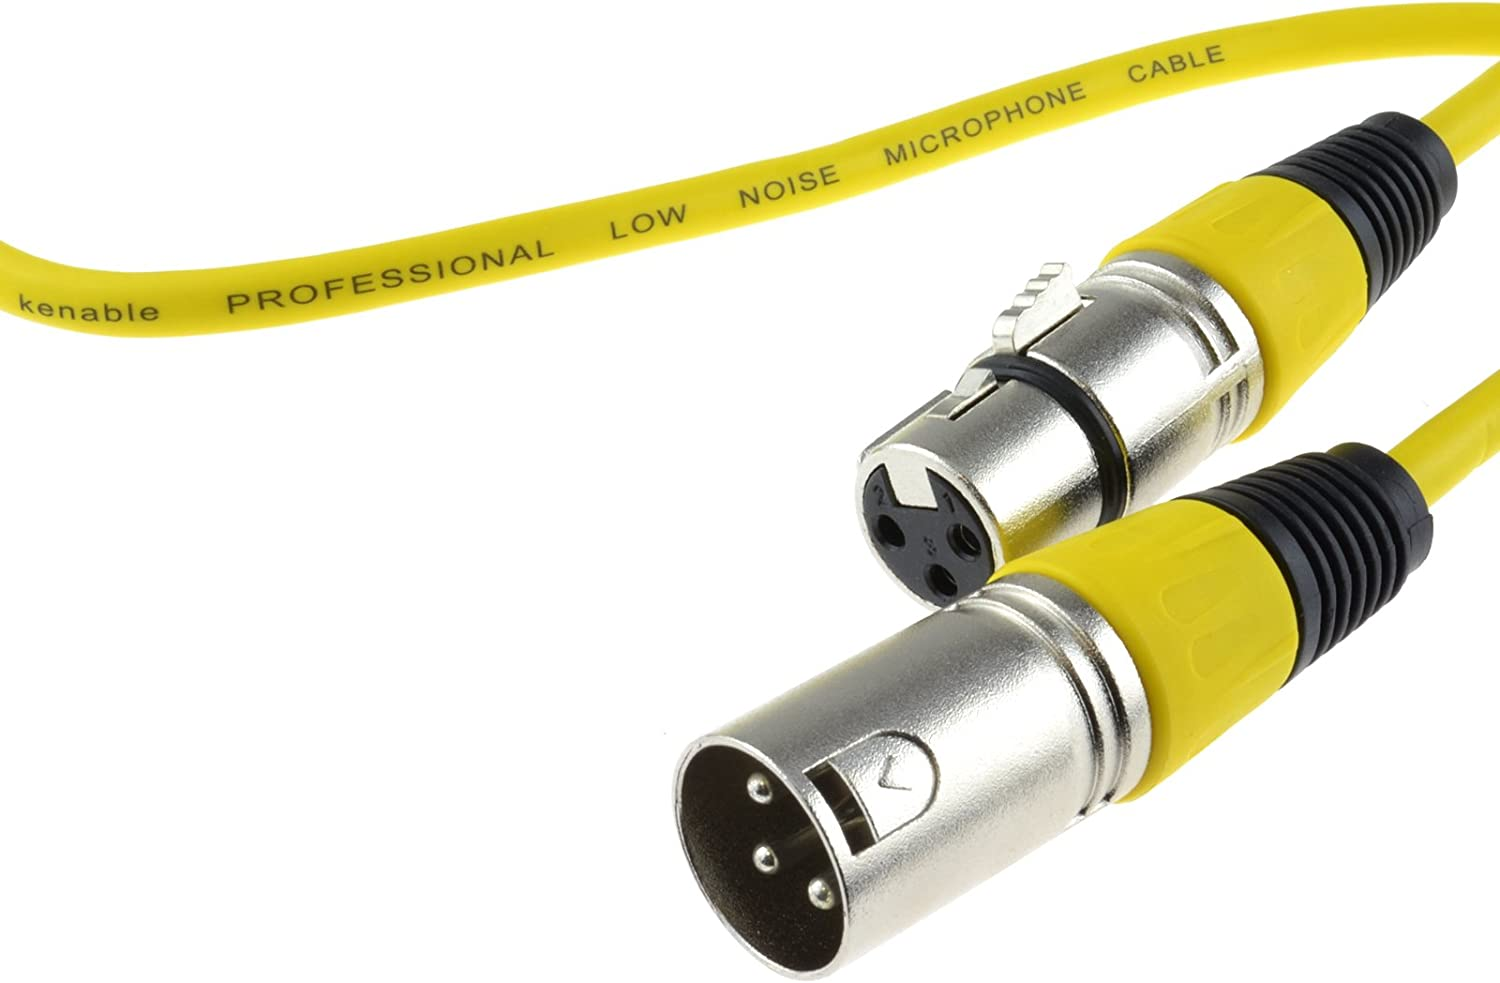 kenable XLR Microphone Lead Male to Female Audio Cable Yellow 0.3m ~1 Foot